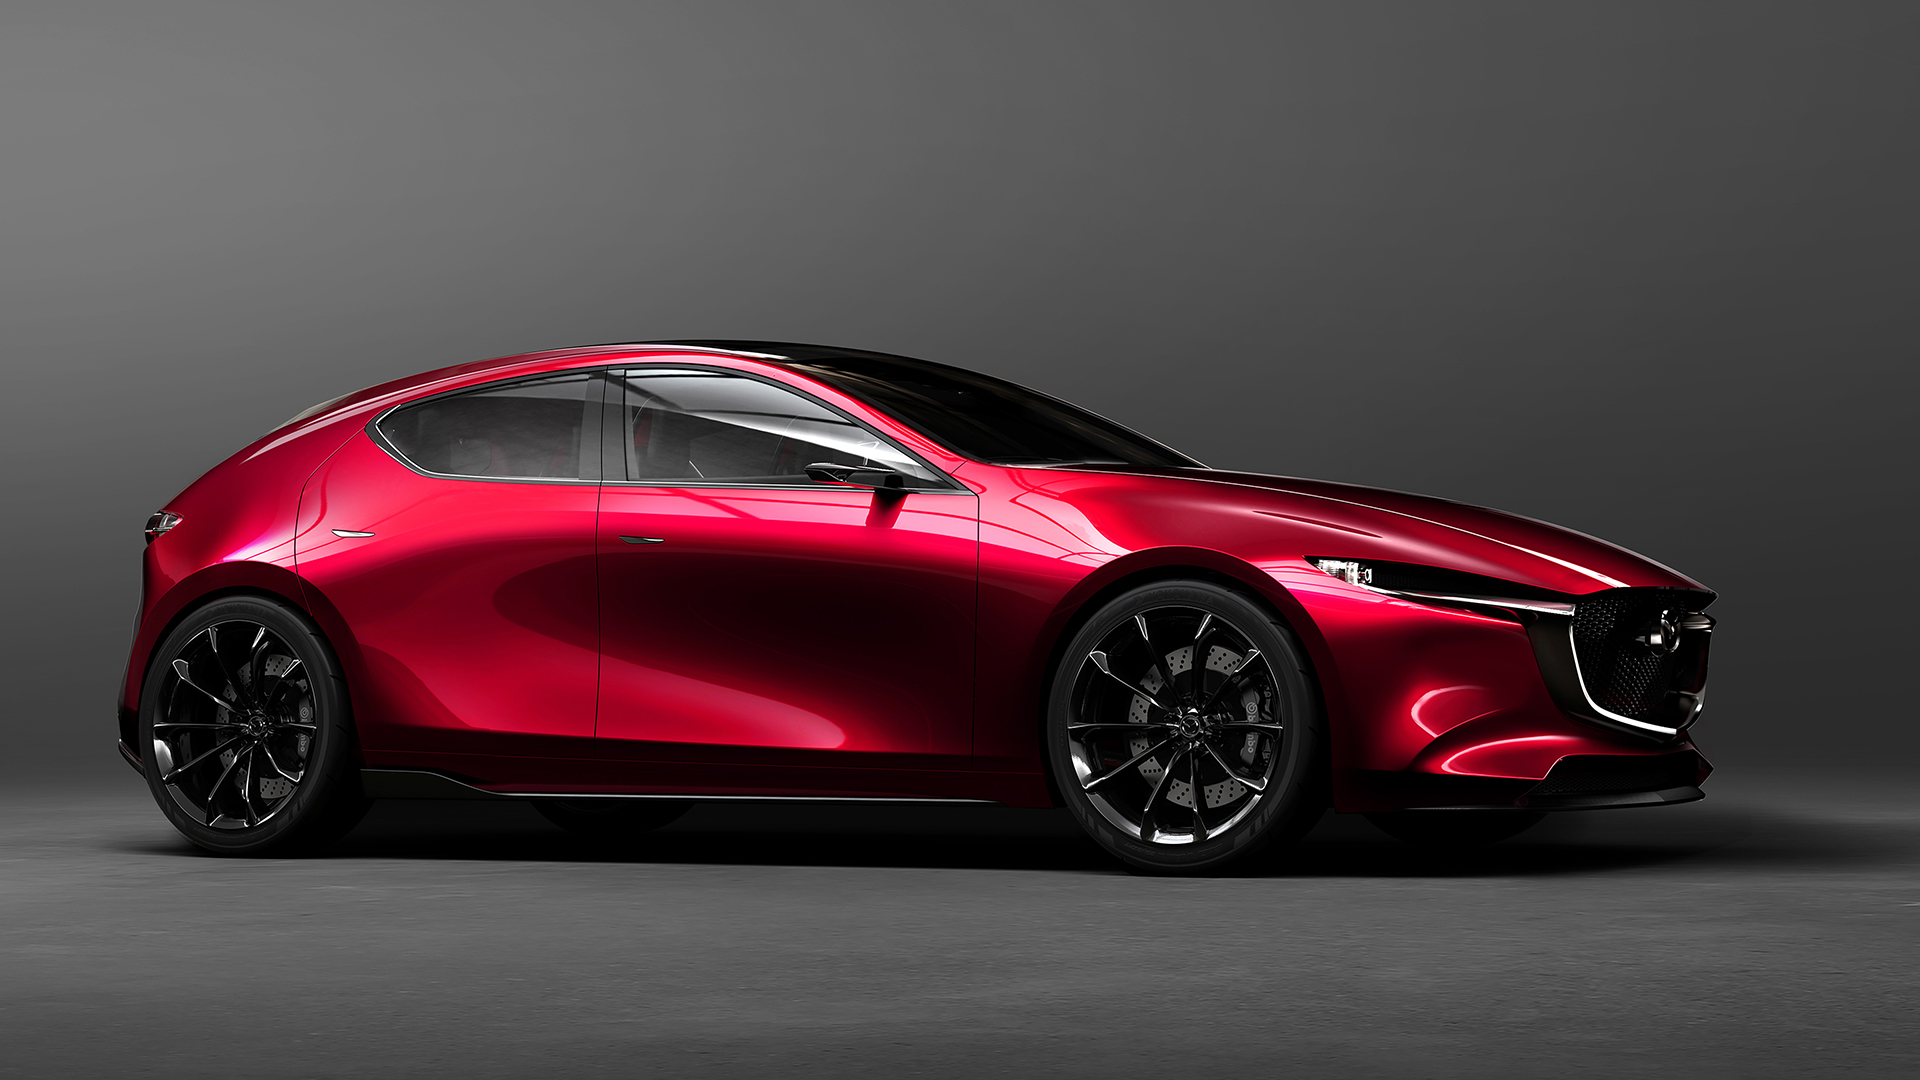 Mazda Reveals KAI CONCEPT and VISION COUPE Concept Cars